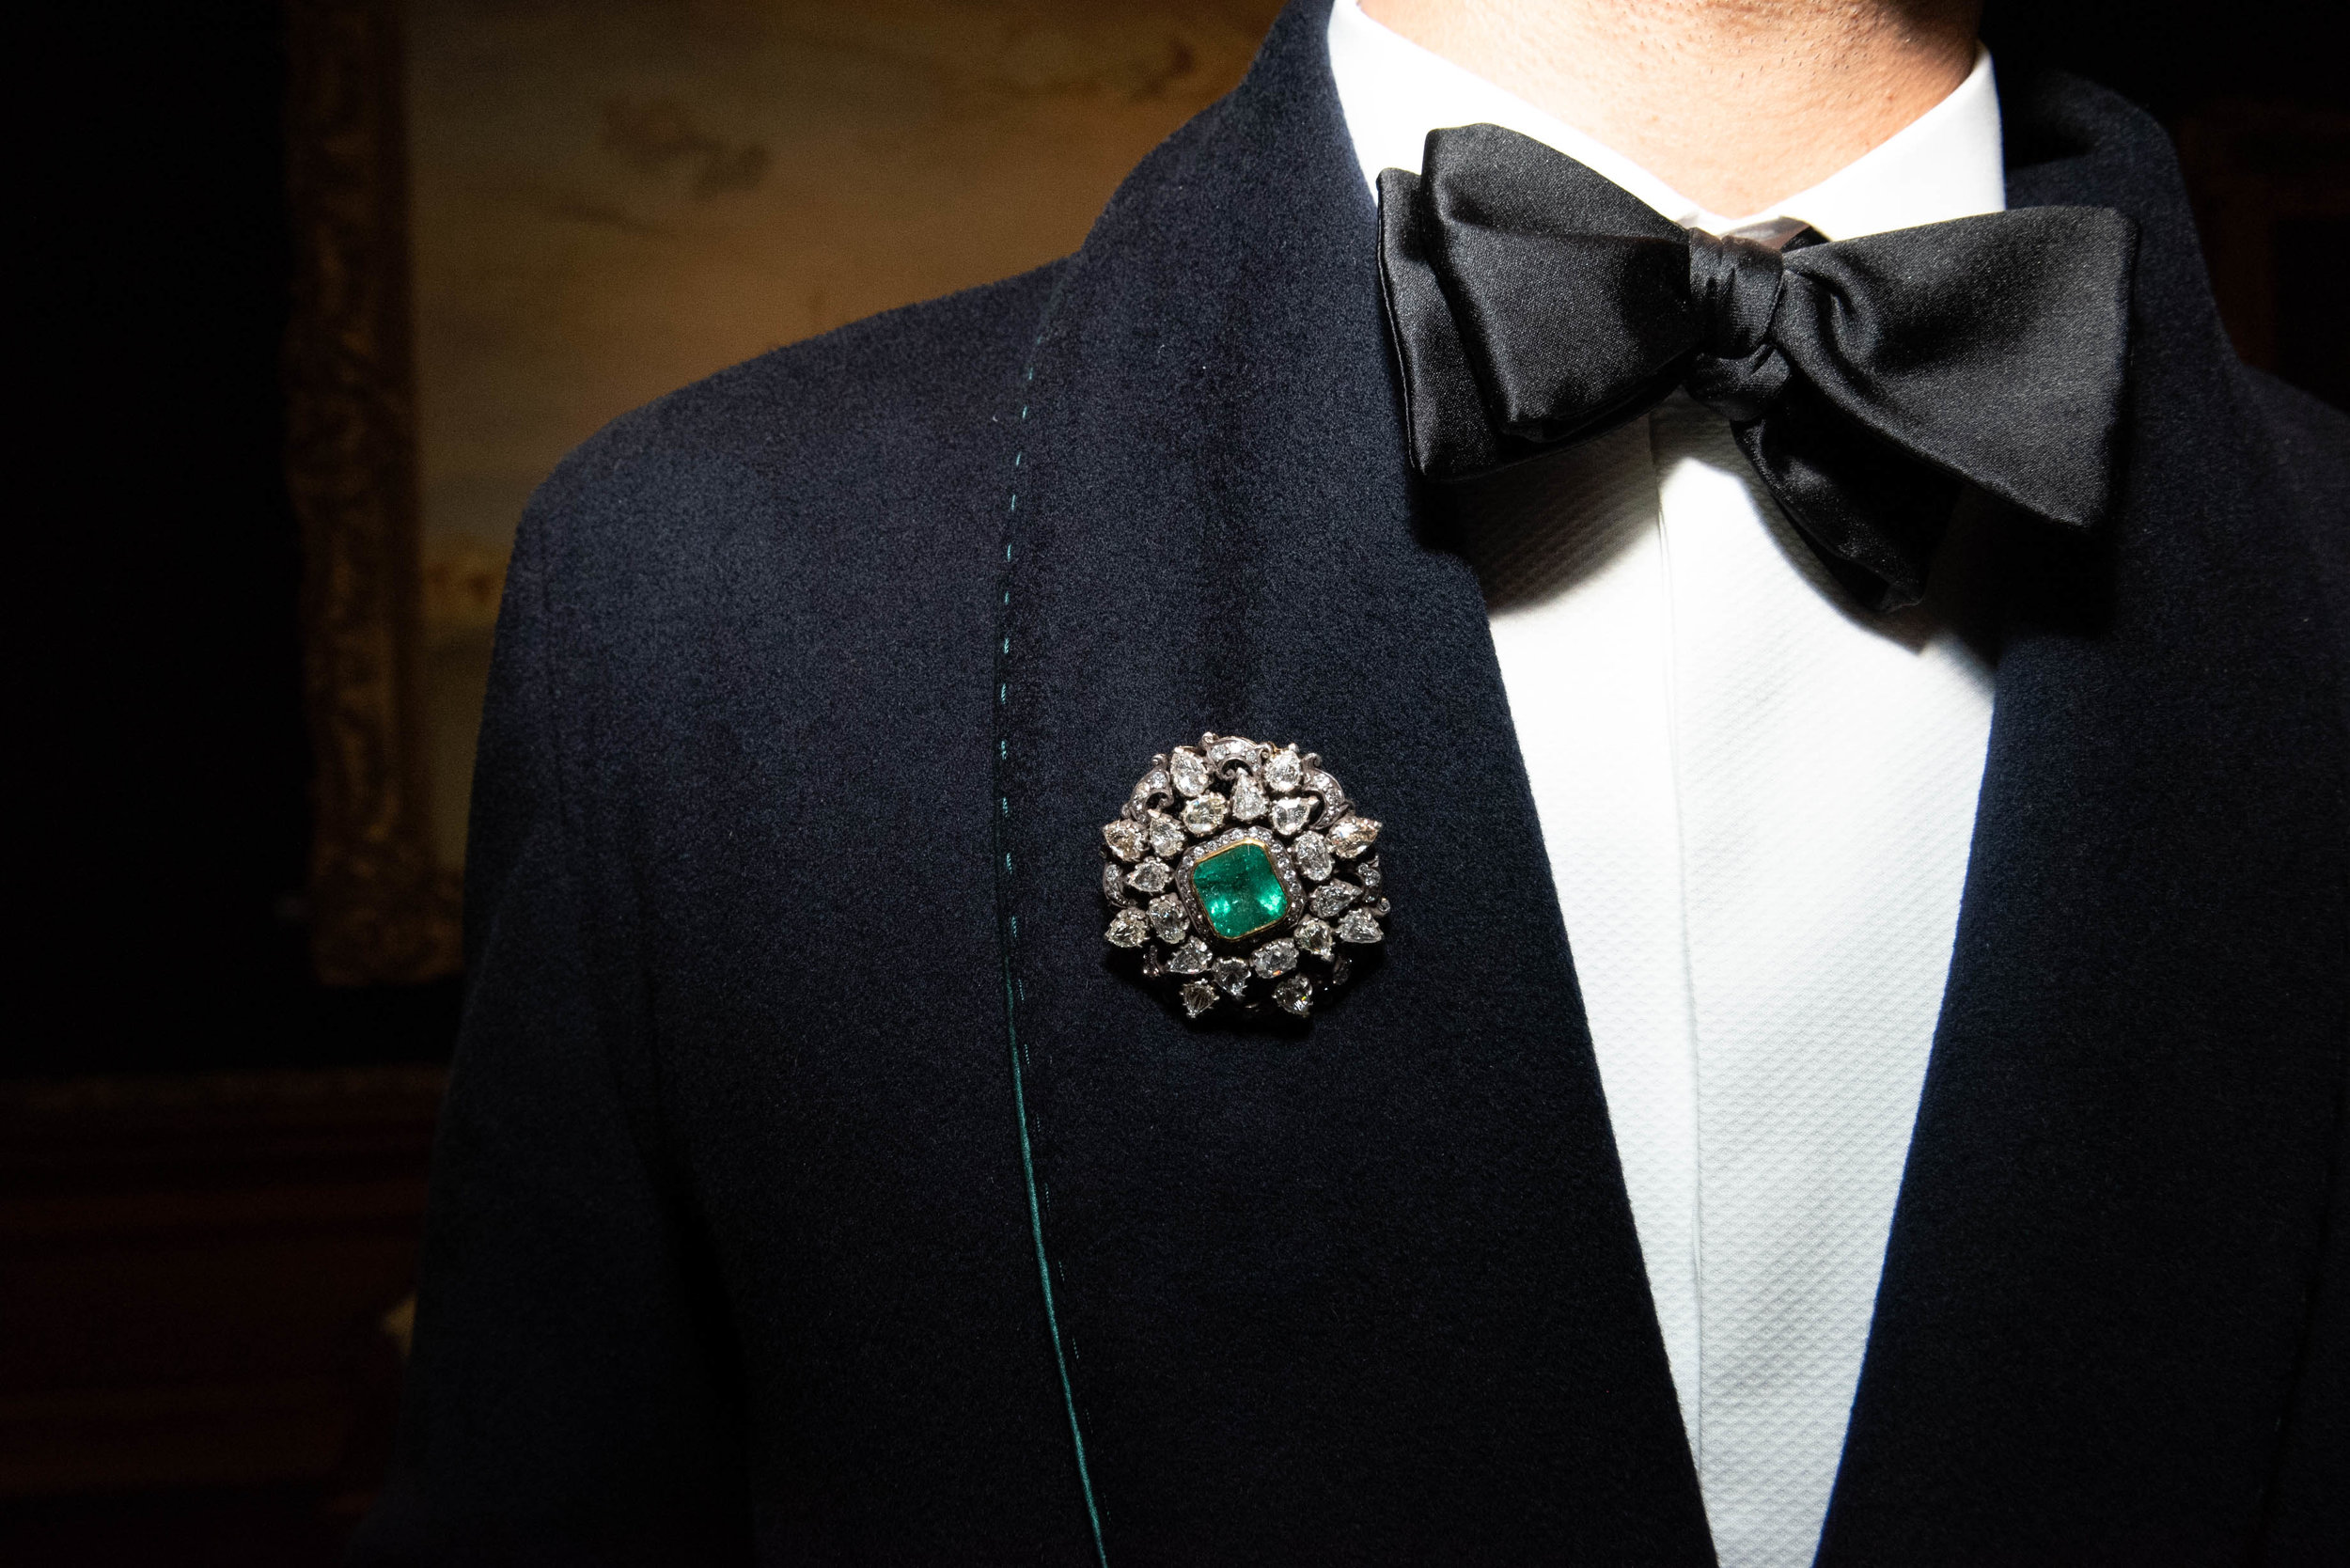 Trustee Dr. Tai-Heng Cheng attends The Frick Collection's 20th Annual Young Fellows Ball at 1 East 70th Street on Thursday, March 21st, 2019. Photography, Courtesy of The Frick Collection.